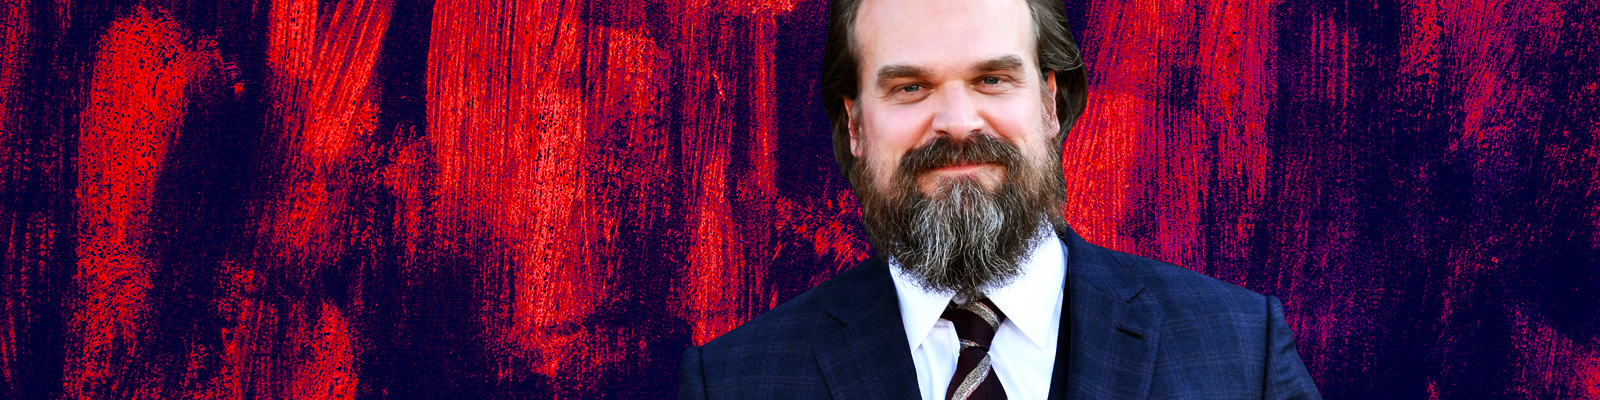 Marvelous David Harbour On Stranger Things Black Widow And Hellboy Pdpeps Interior Chair Design Pdpepsorg